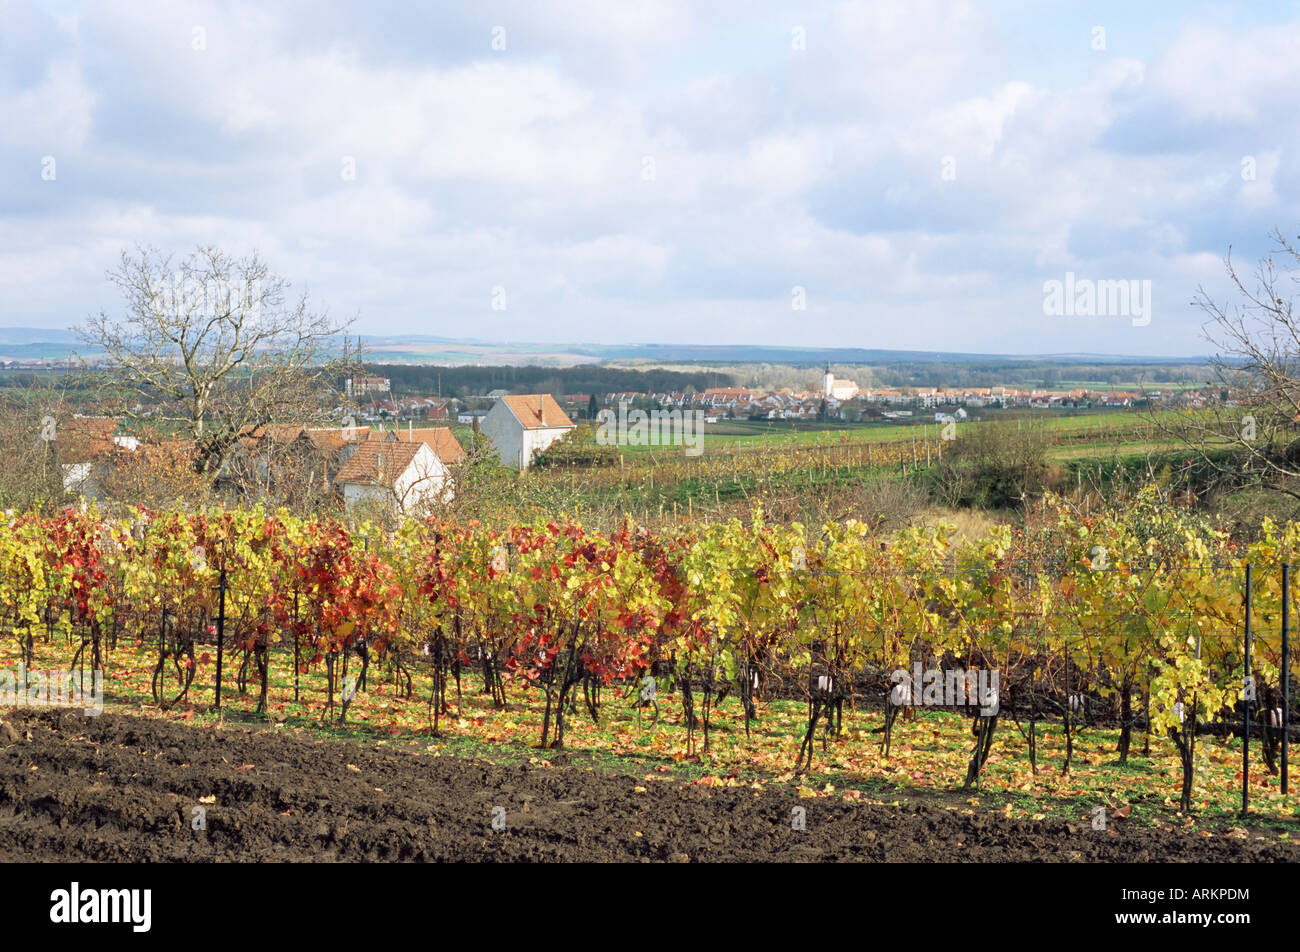 Vines at vineyard in autumn, Sidleny Wine Cellars in Milotice, Moravian Slovacko folk region, Milotice, Brnensko, Stock Photo